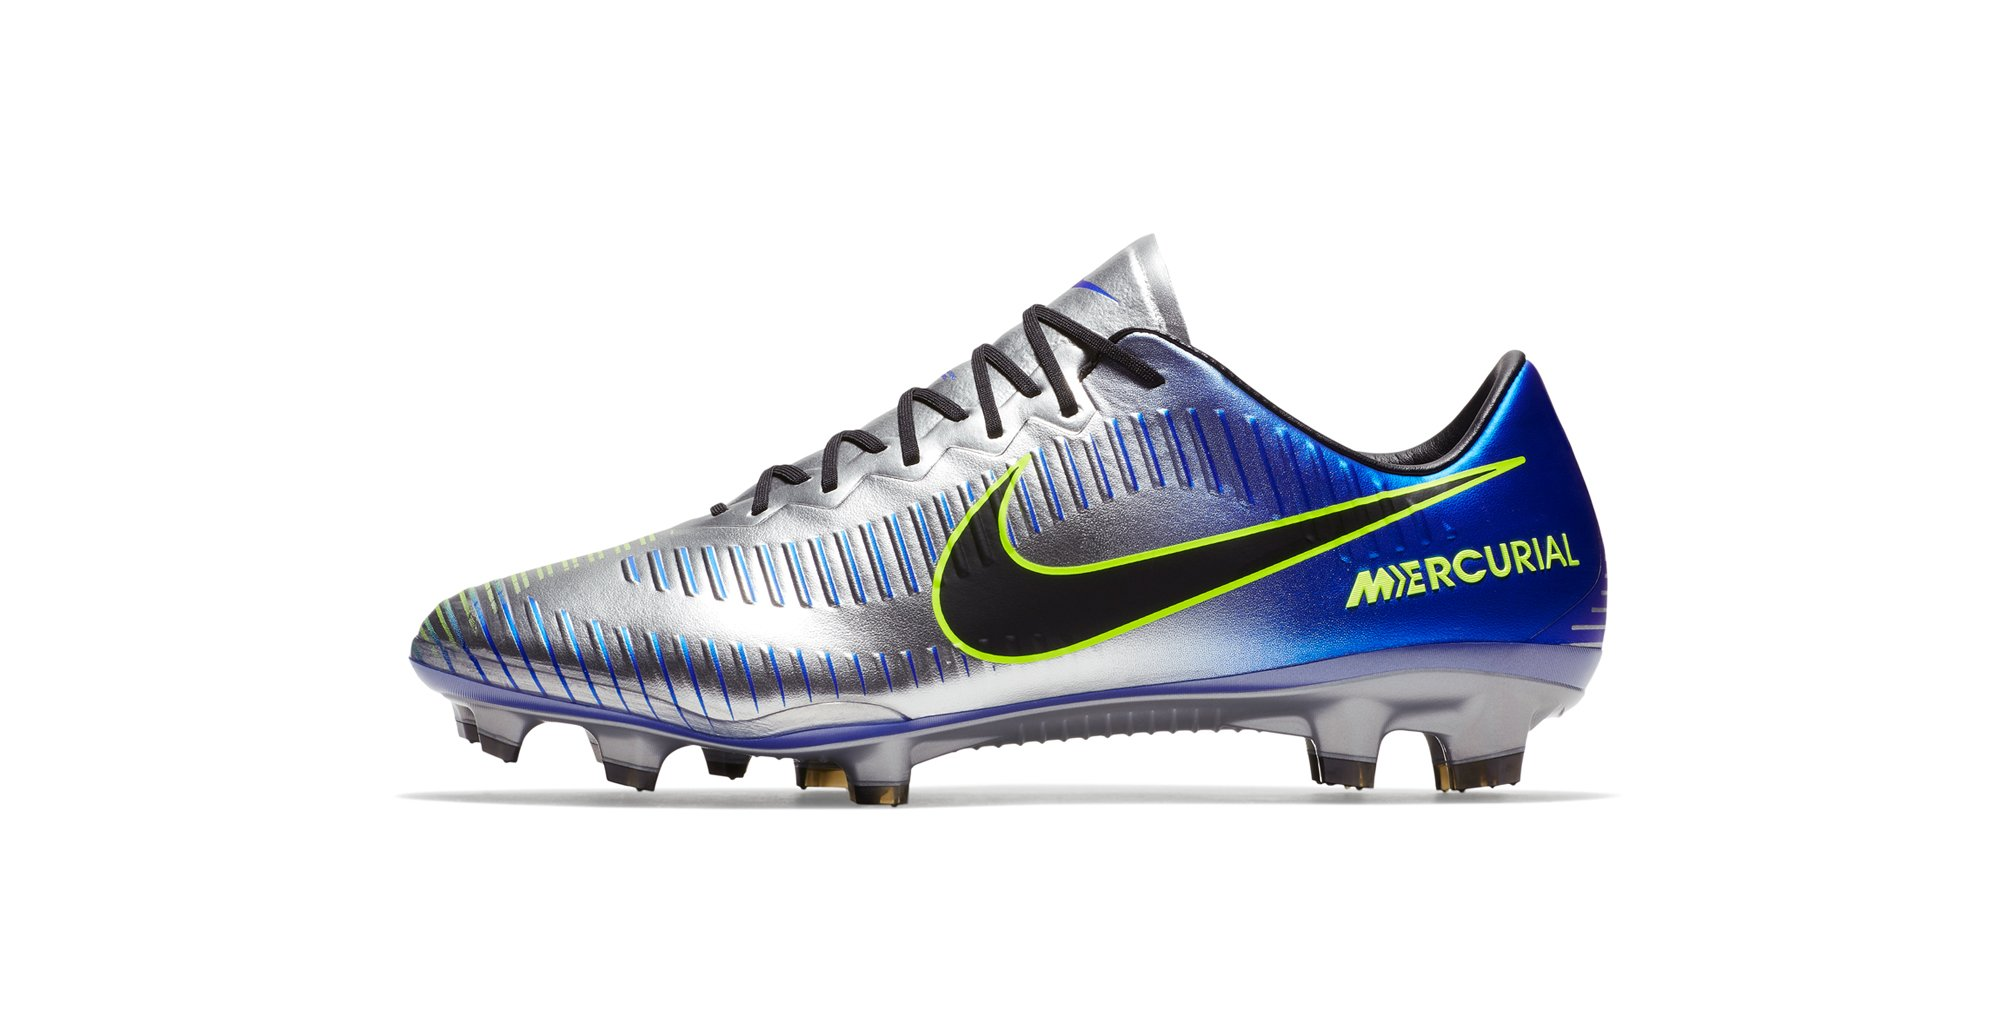 456af0f884 Find your perfect Neymar Mercurial. Kids. Nike Mercurial Vapor XI Neymar  Kids FG Football Boots